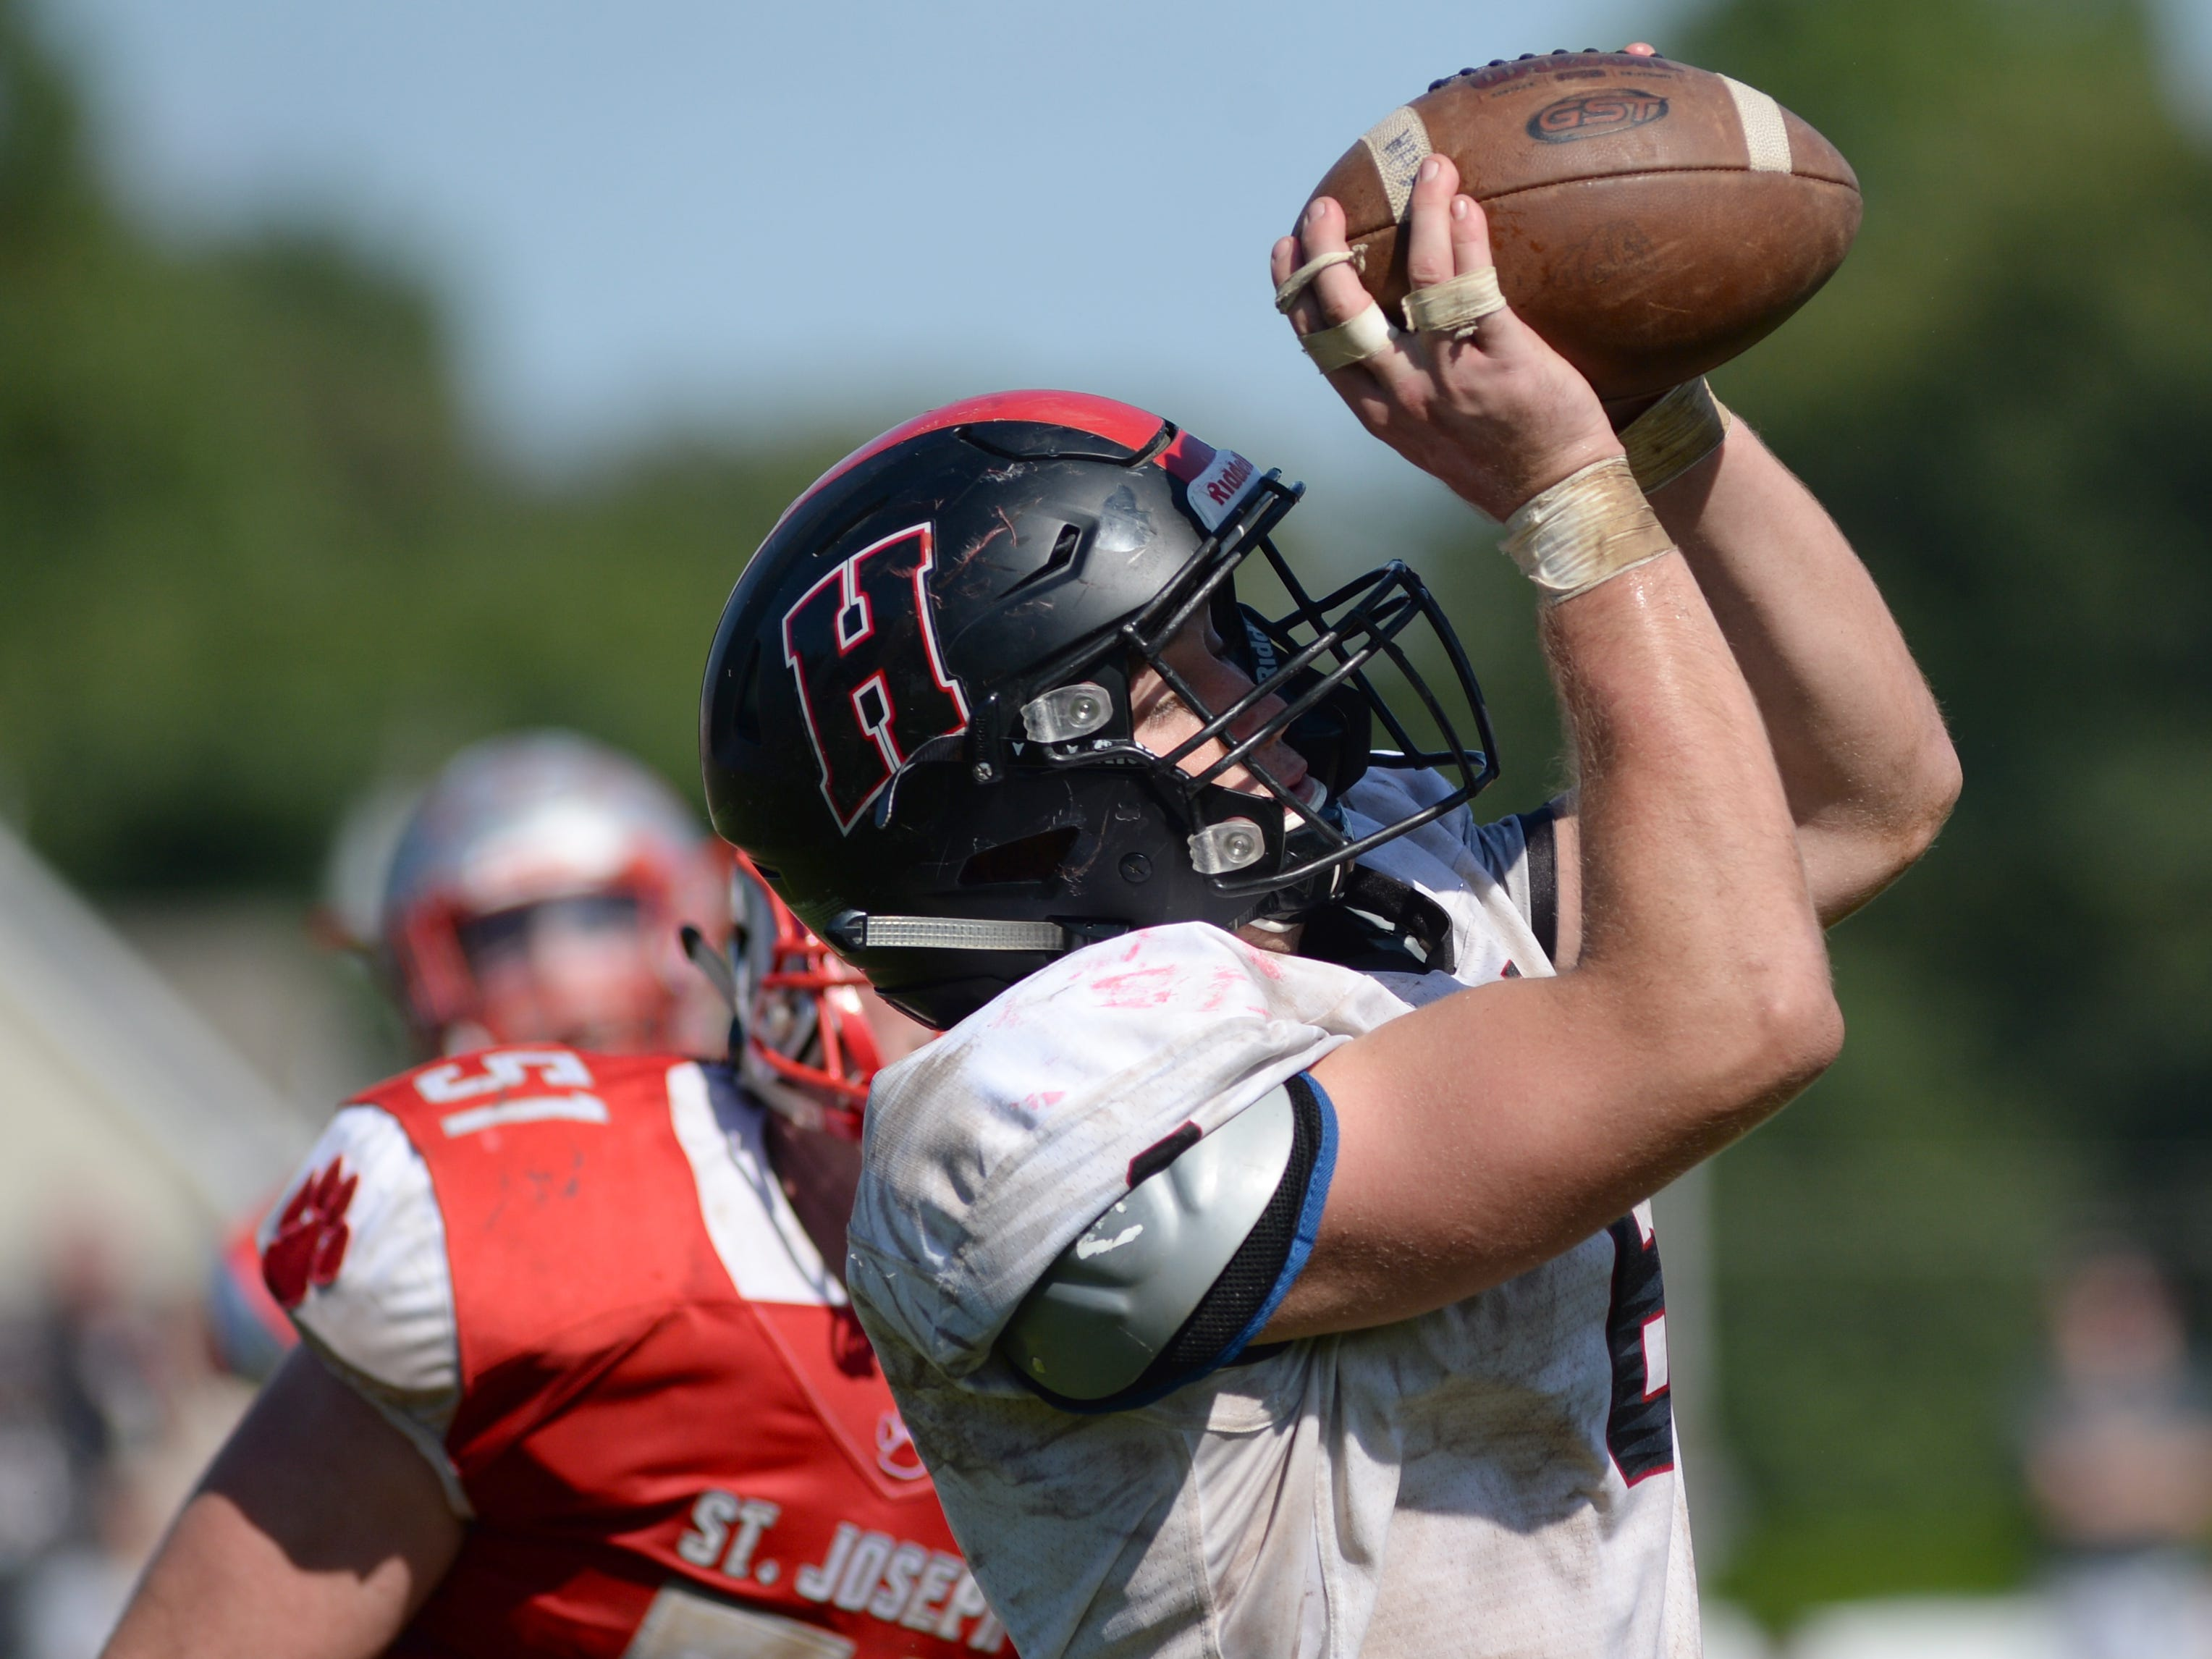 Haddonfield's Gabe Klaus catches a pass for a 2-point conversion during Saturday's game against St. Joseph, Sept. 29, 2018.